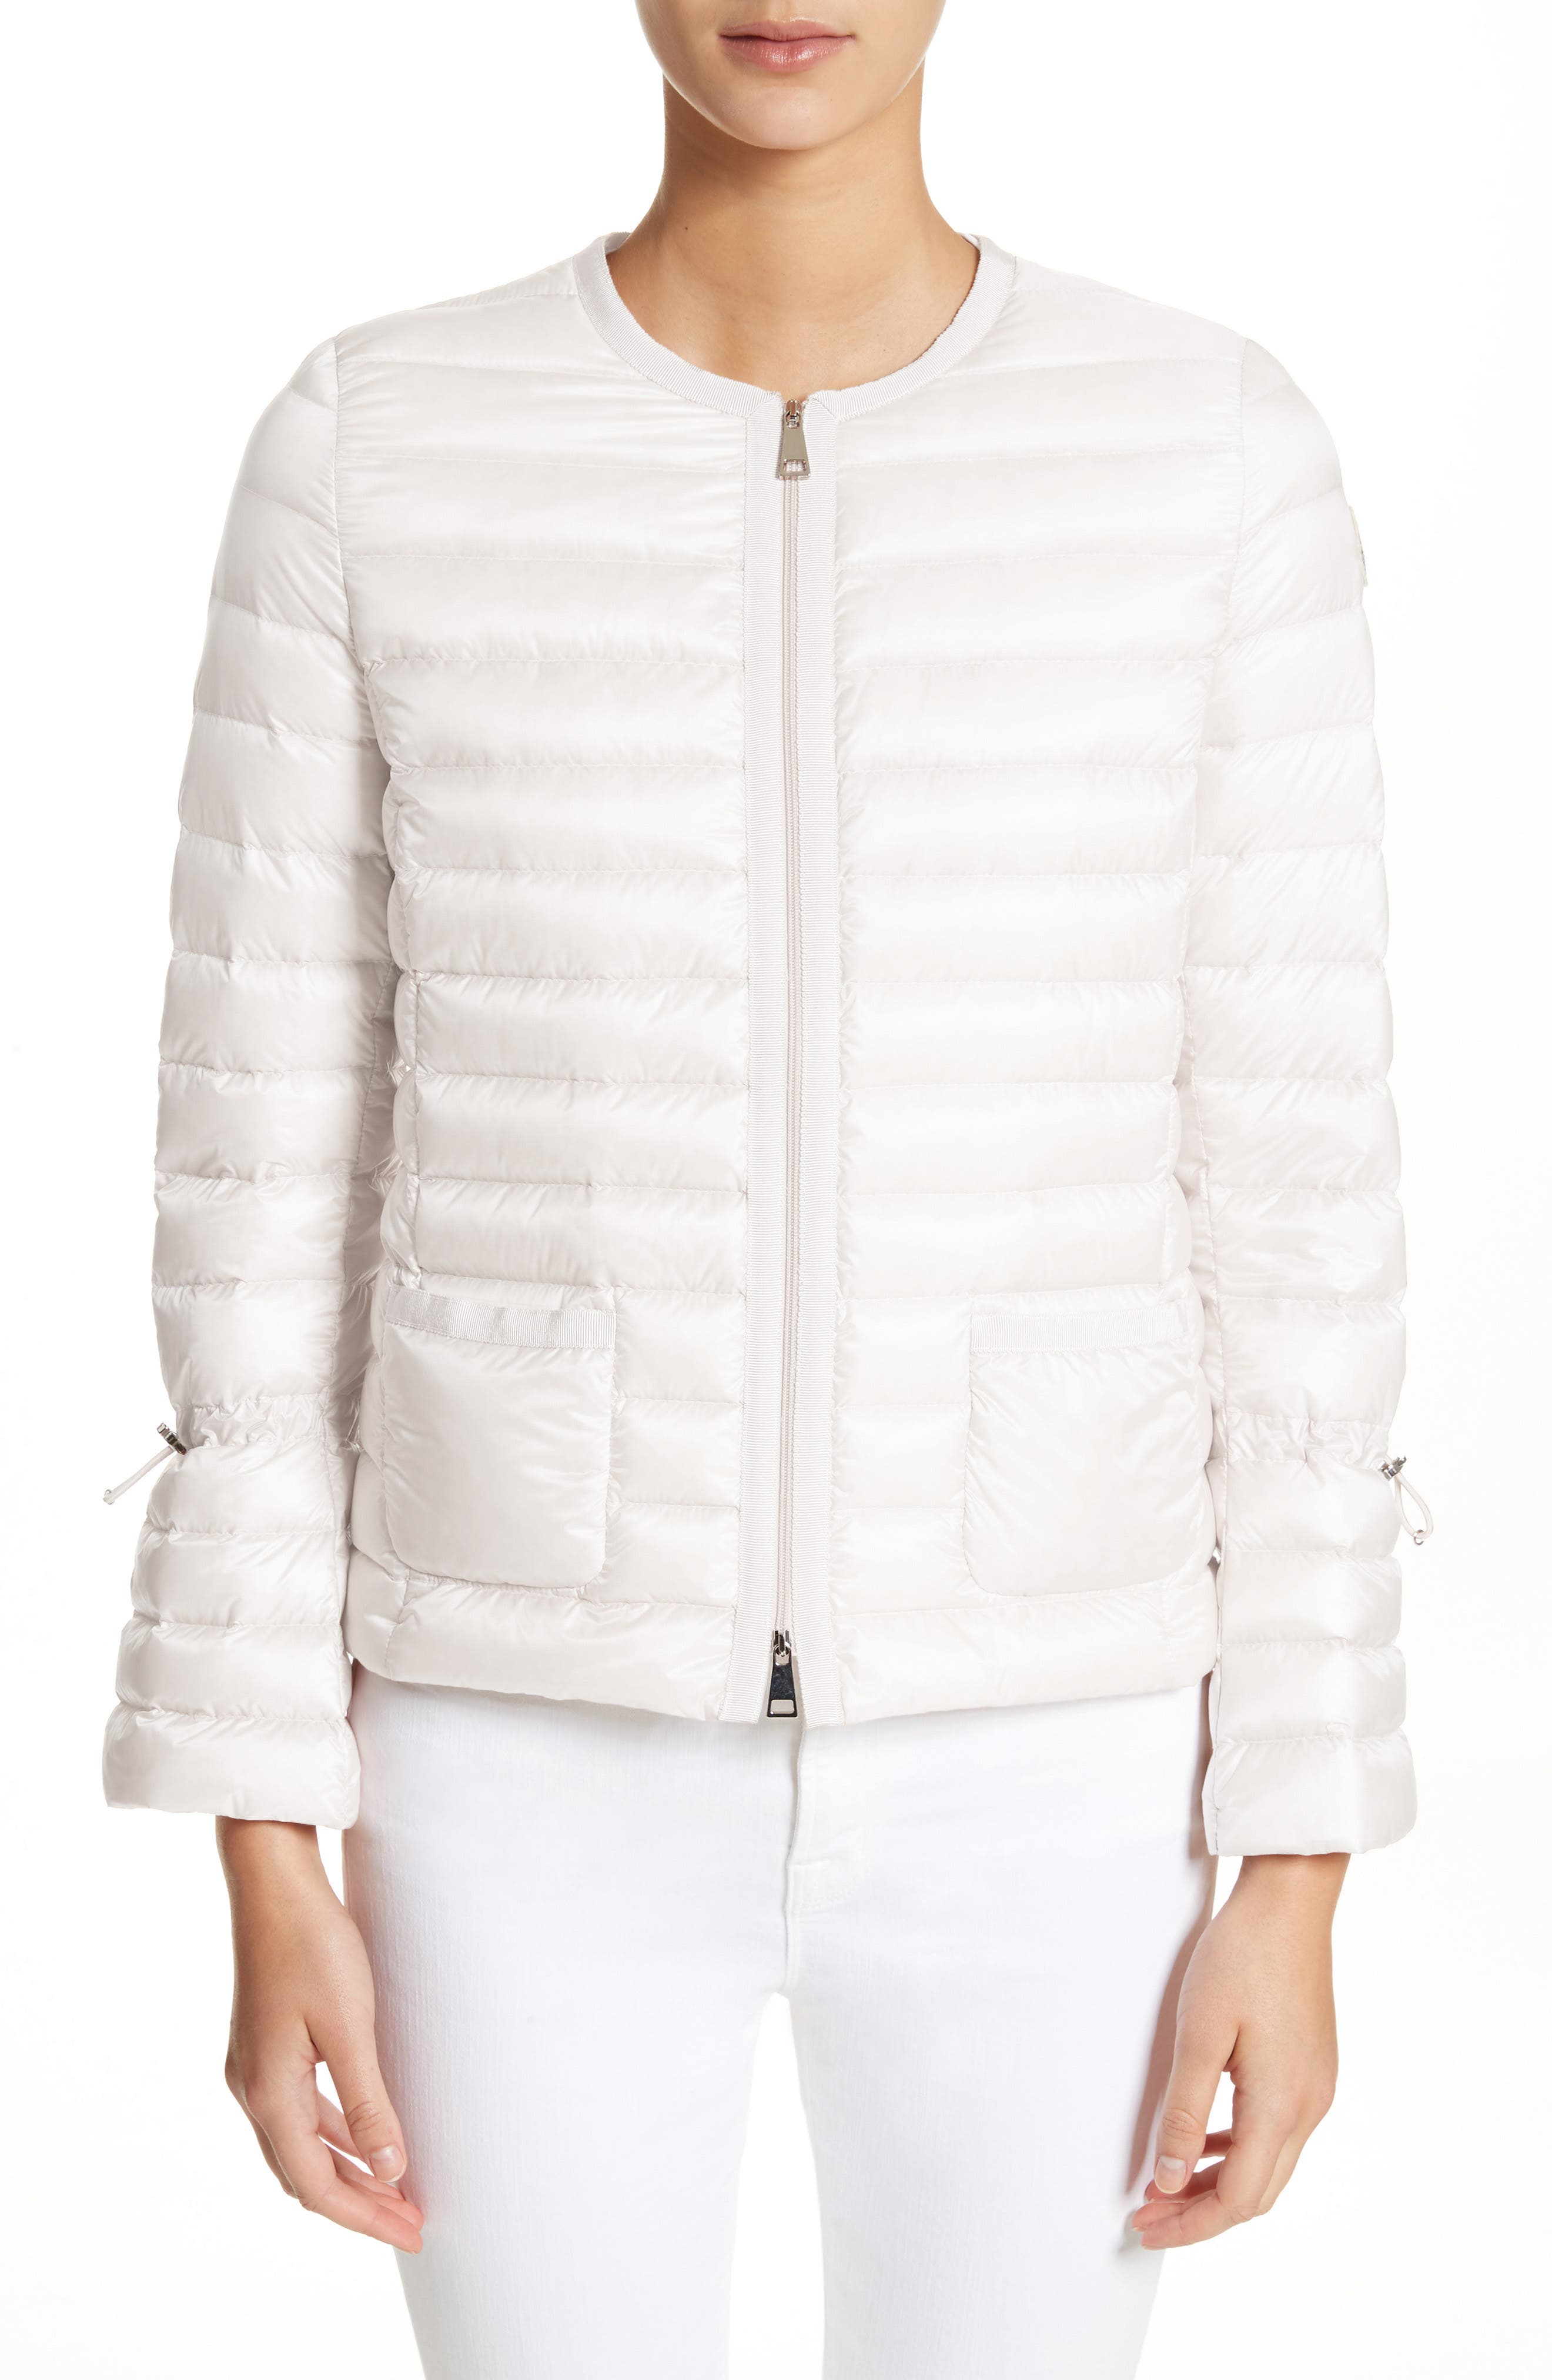 Almandin Quilted Puffer Jacket,                         Main,                         color, White